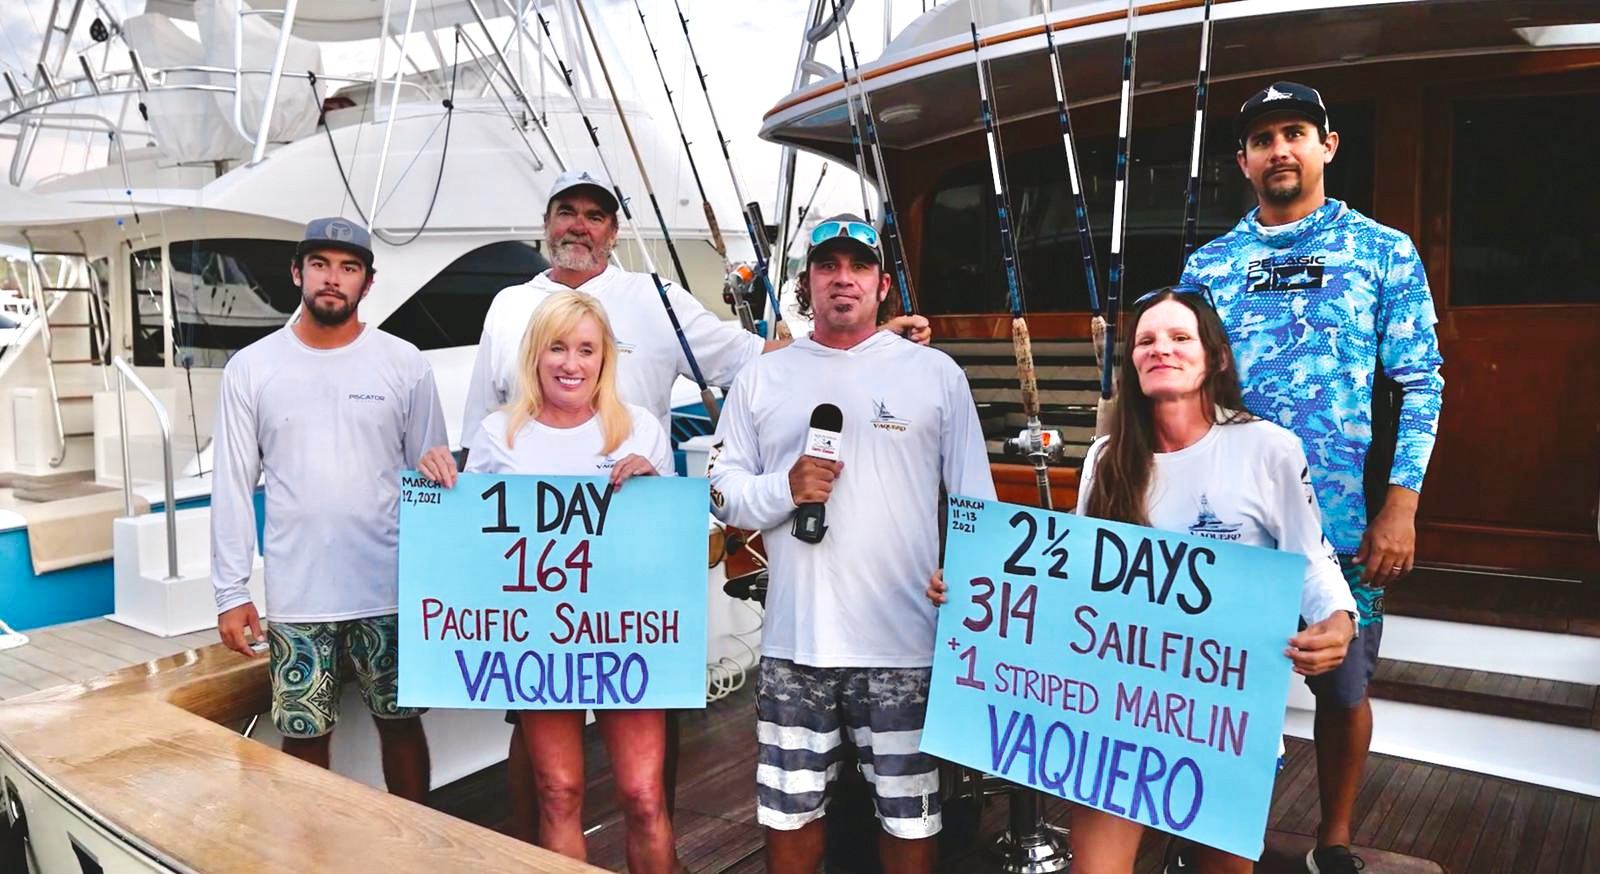 Vaquero's Pacific Sailfish Single-Day Release Record